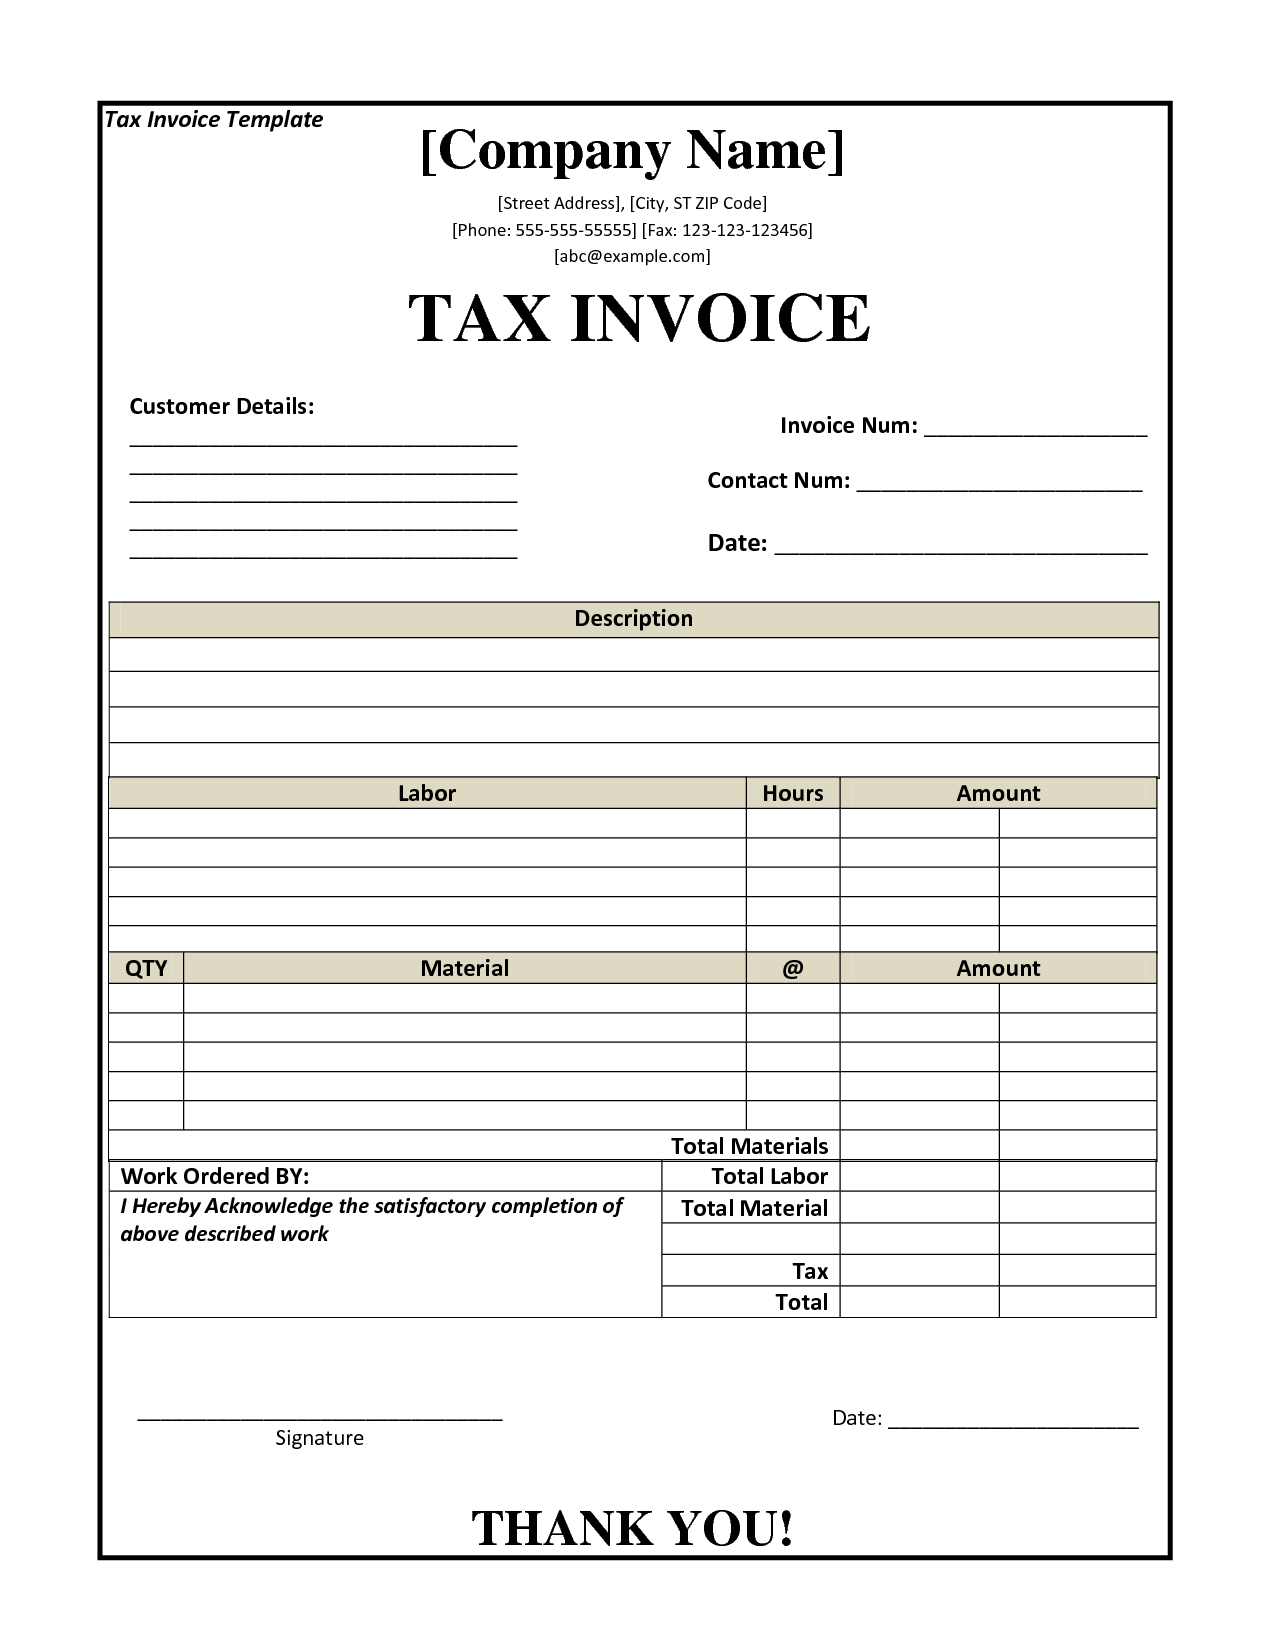 Sample Invoices for Small Business and Tax Invoice Template Nz Invoice Example